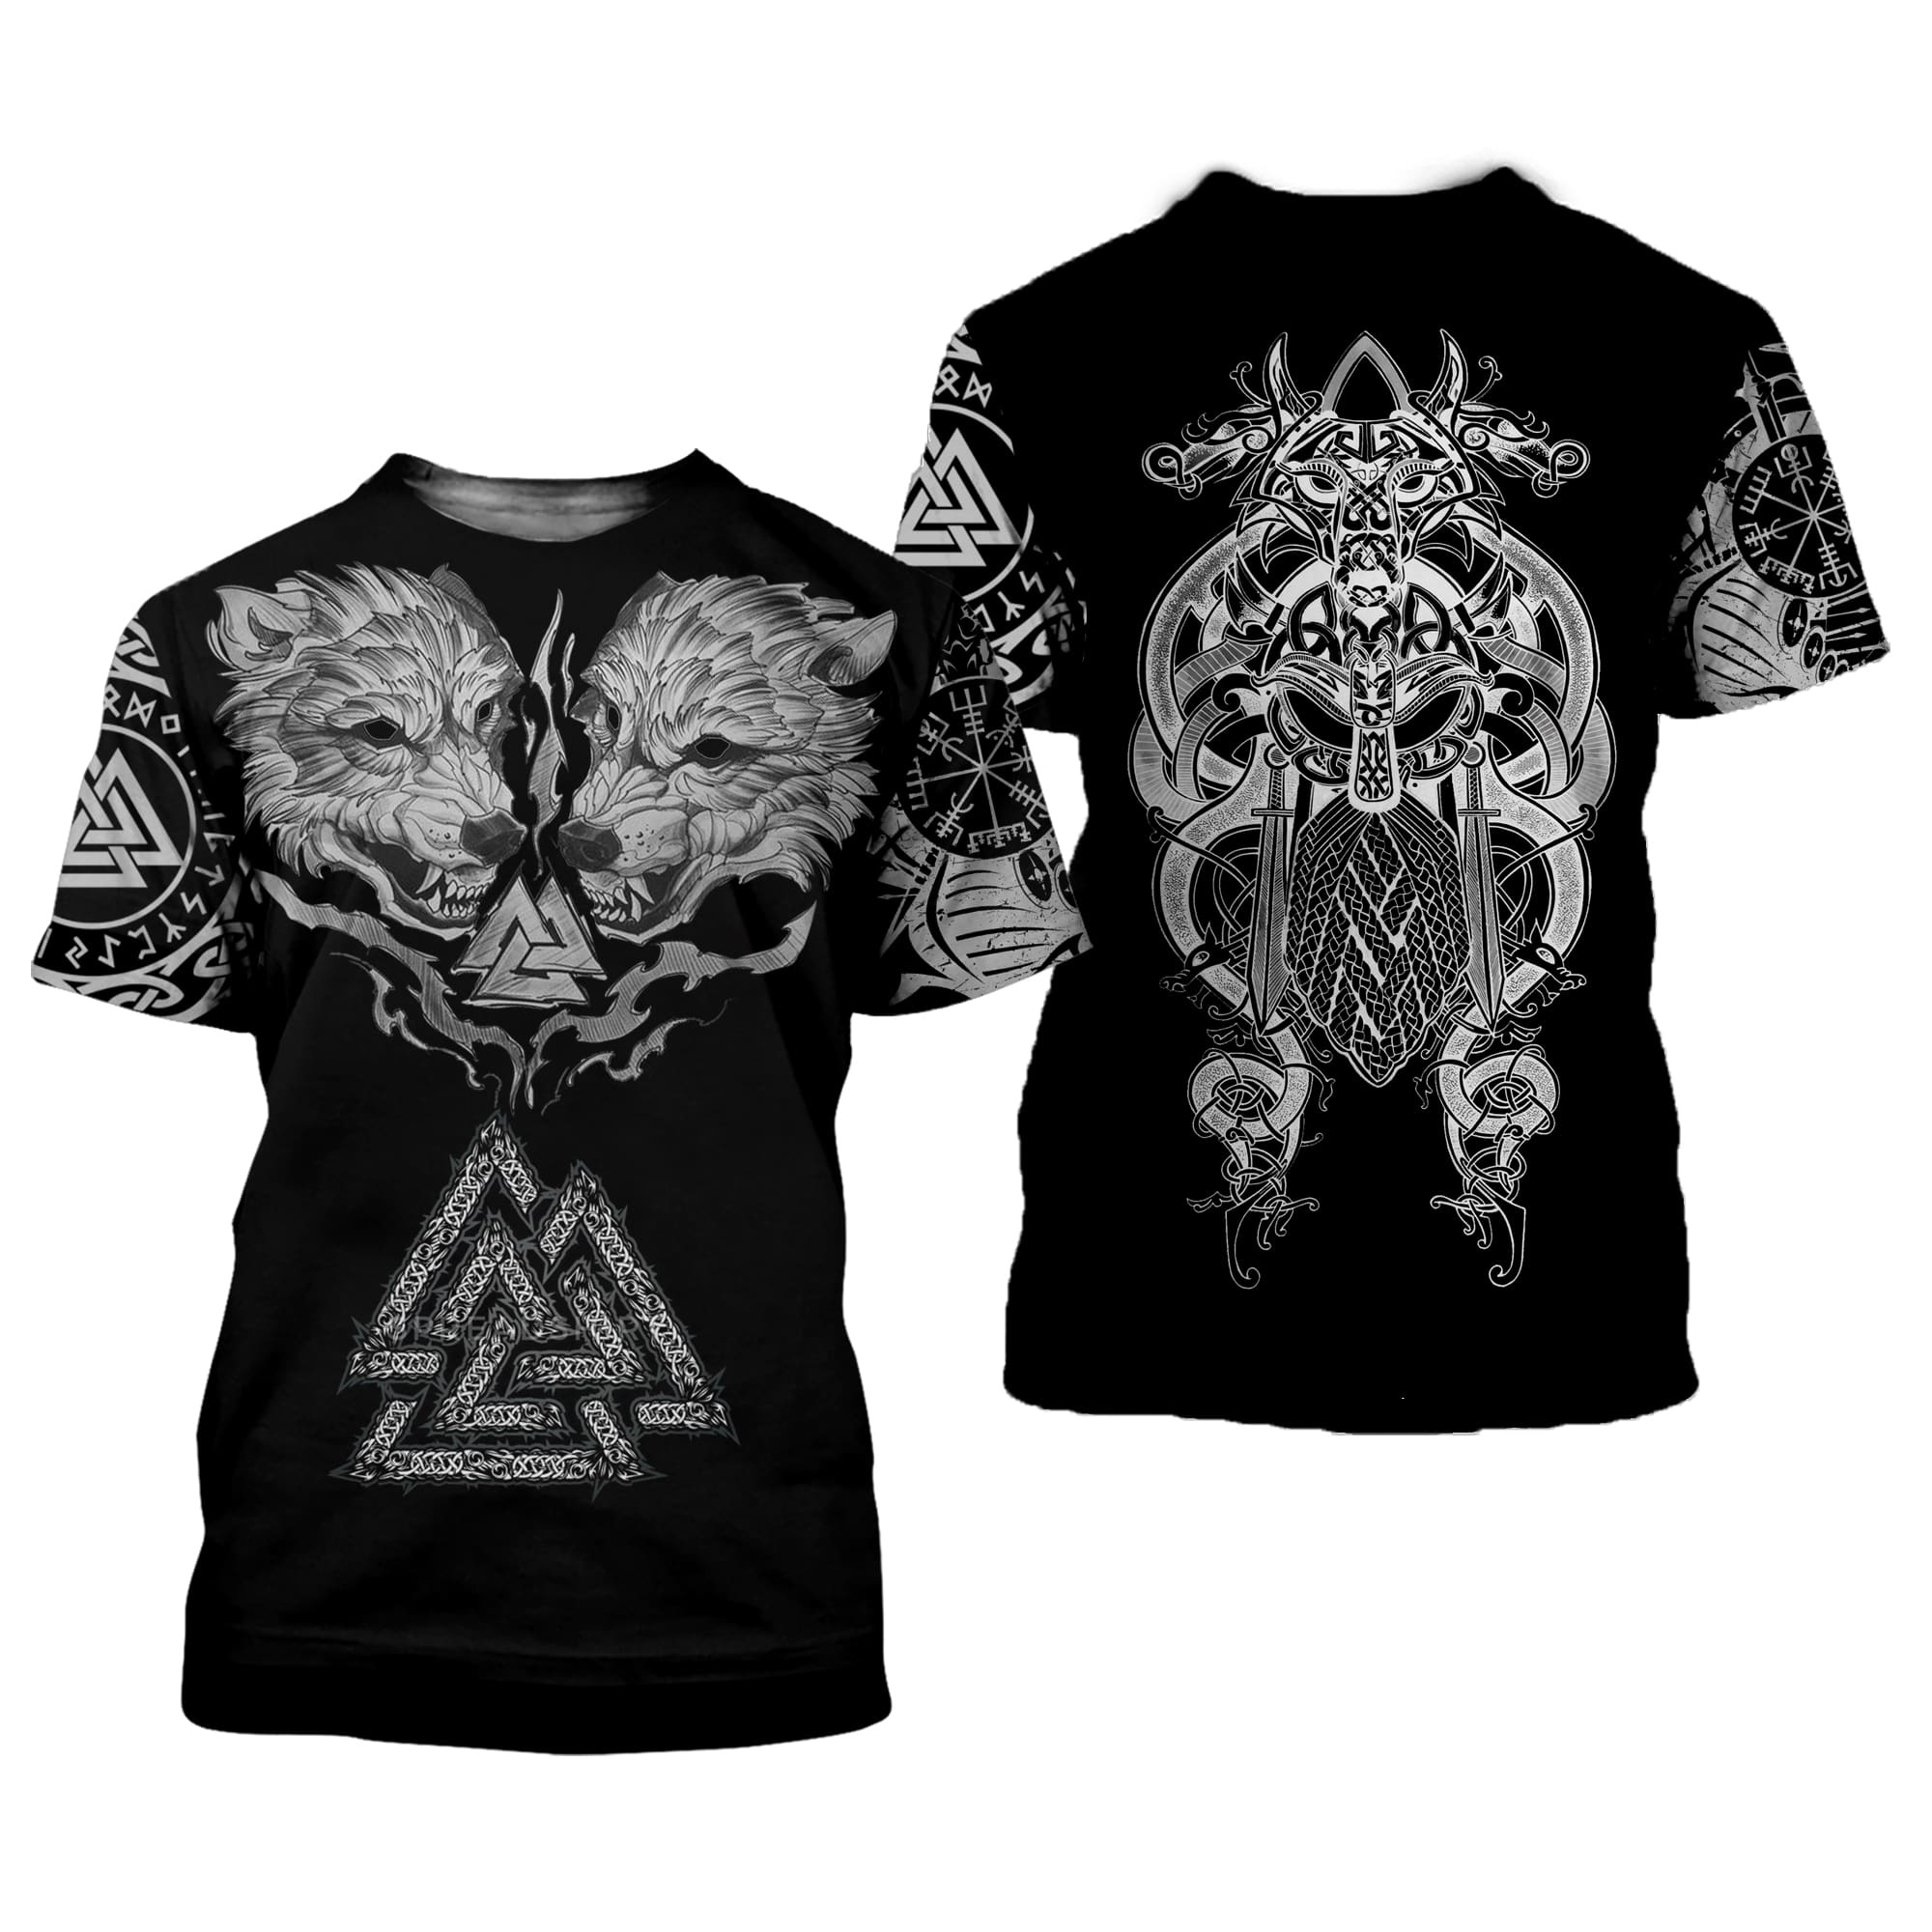 Vikings Tattoo 3D All Over Printed Shirts For Men And Women 112